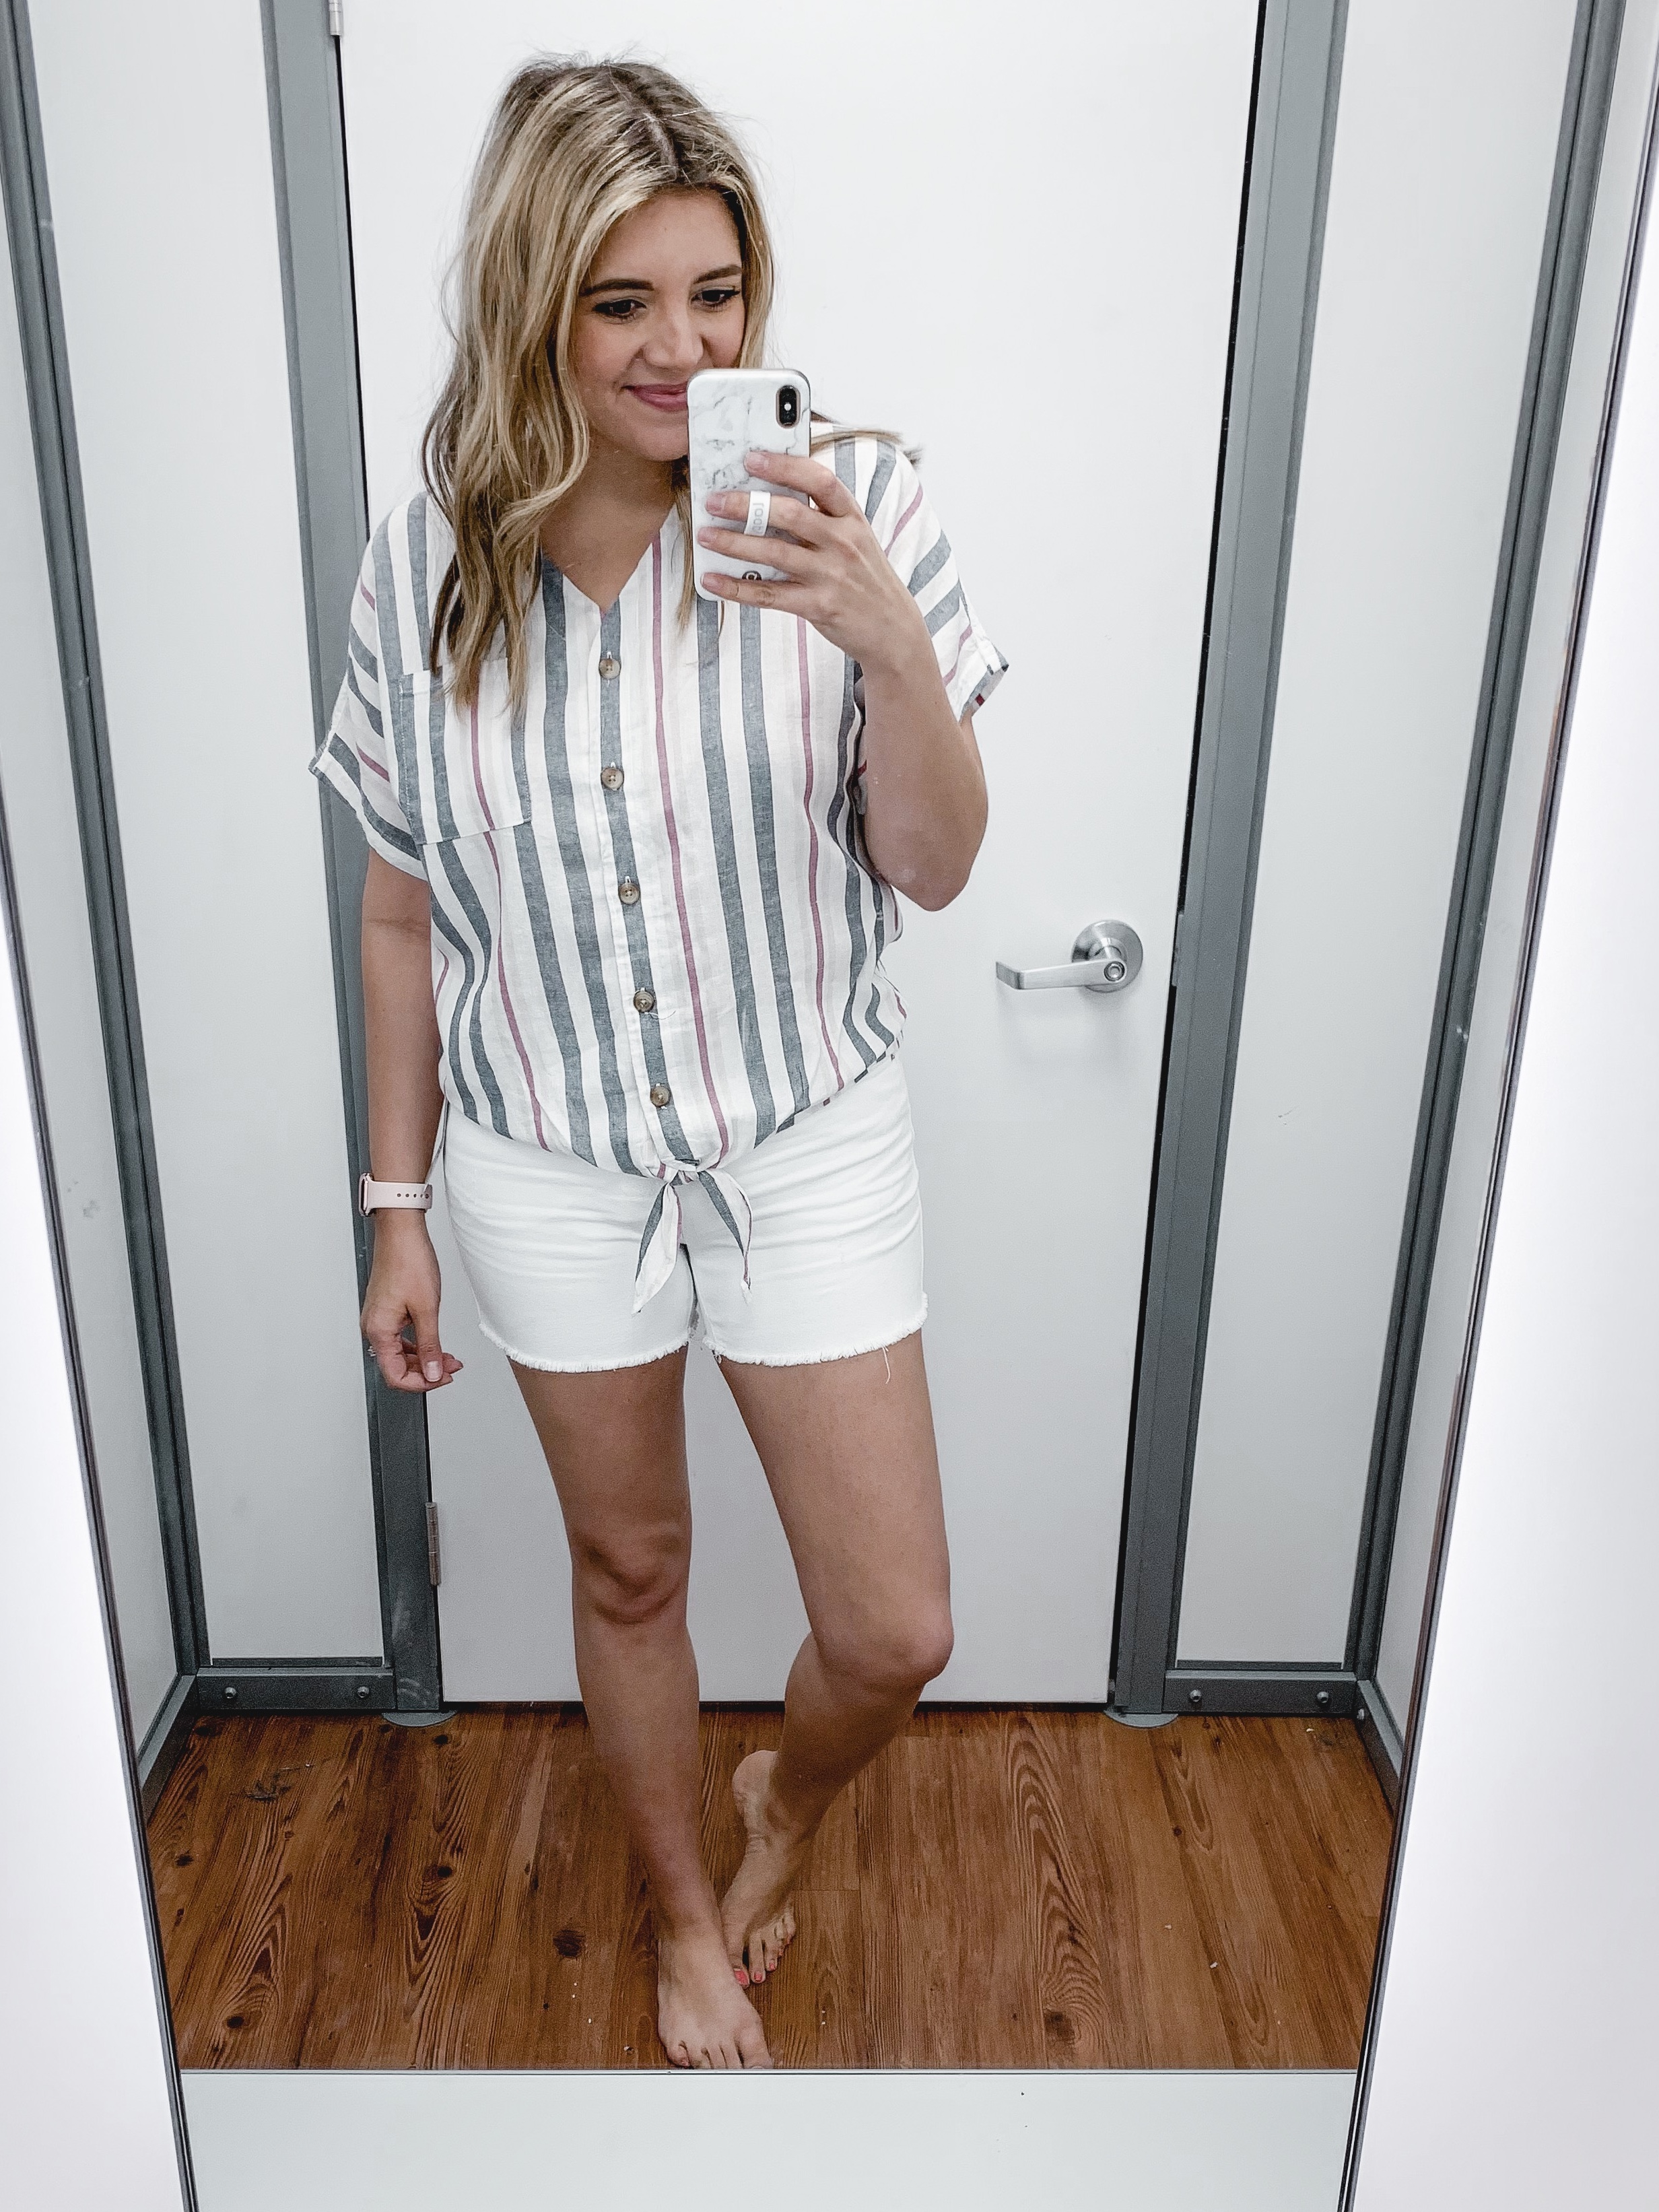 Affordable style blogger, Lauren Dix, shares a walmart clothing try on session with over 20 current Walmart finds!